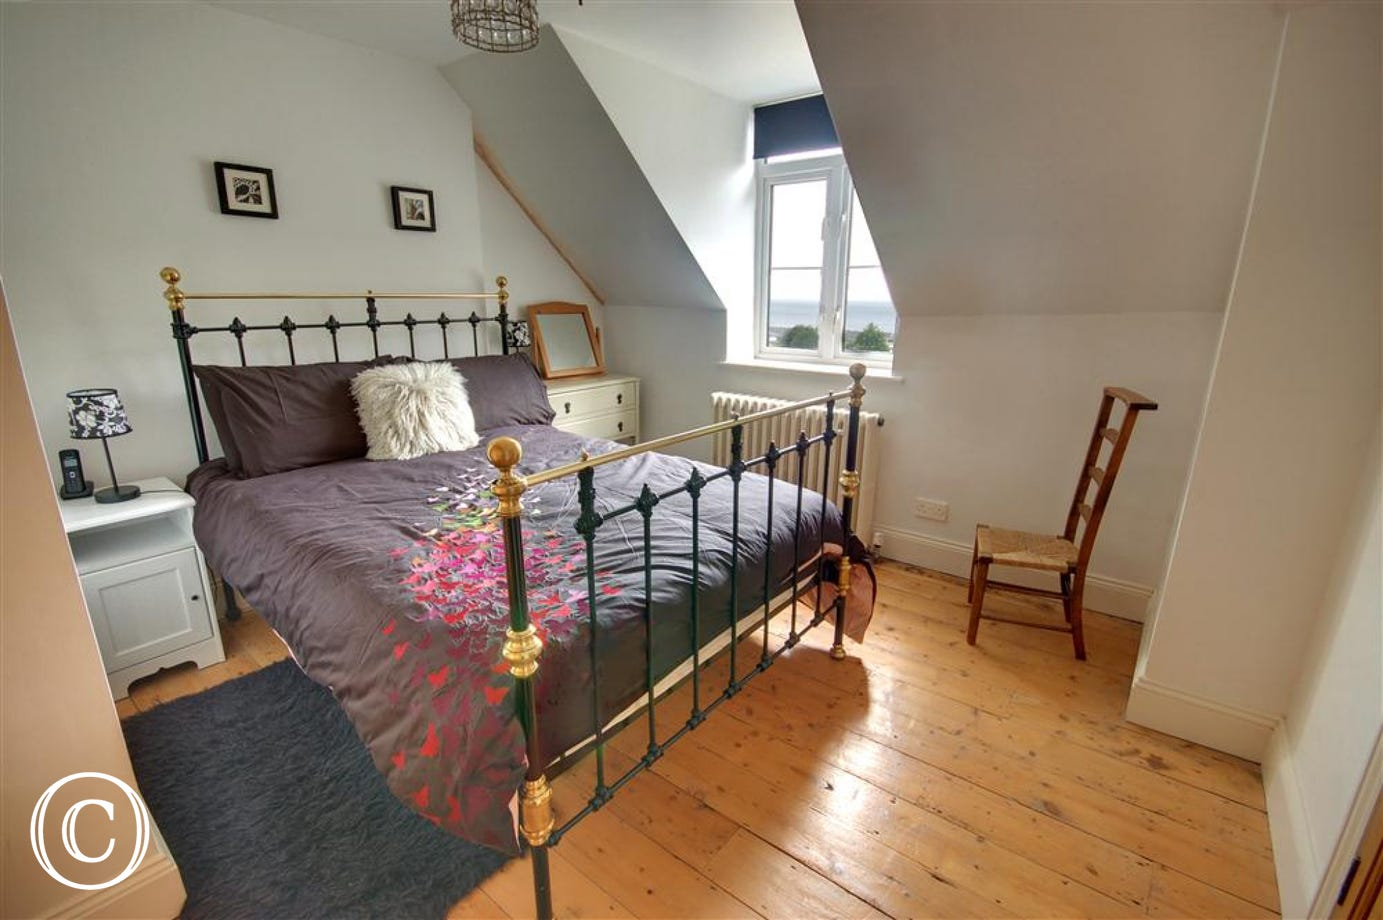 Bedroom 3 with Double iron bedstead is situated on the second floor.